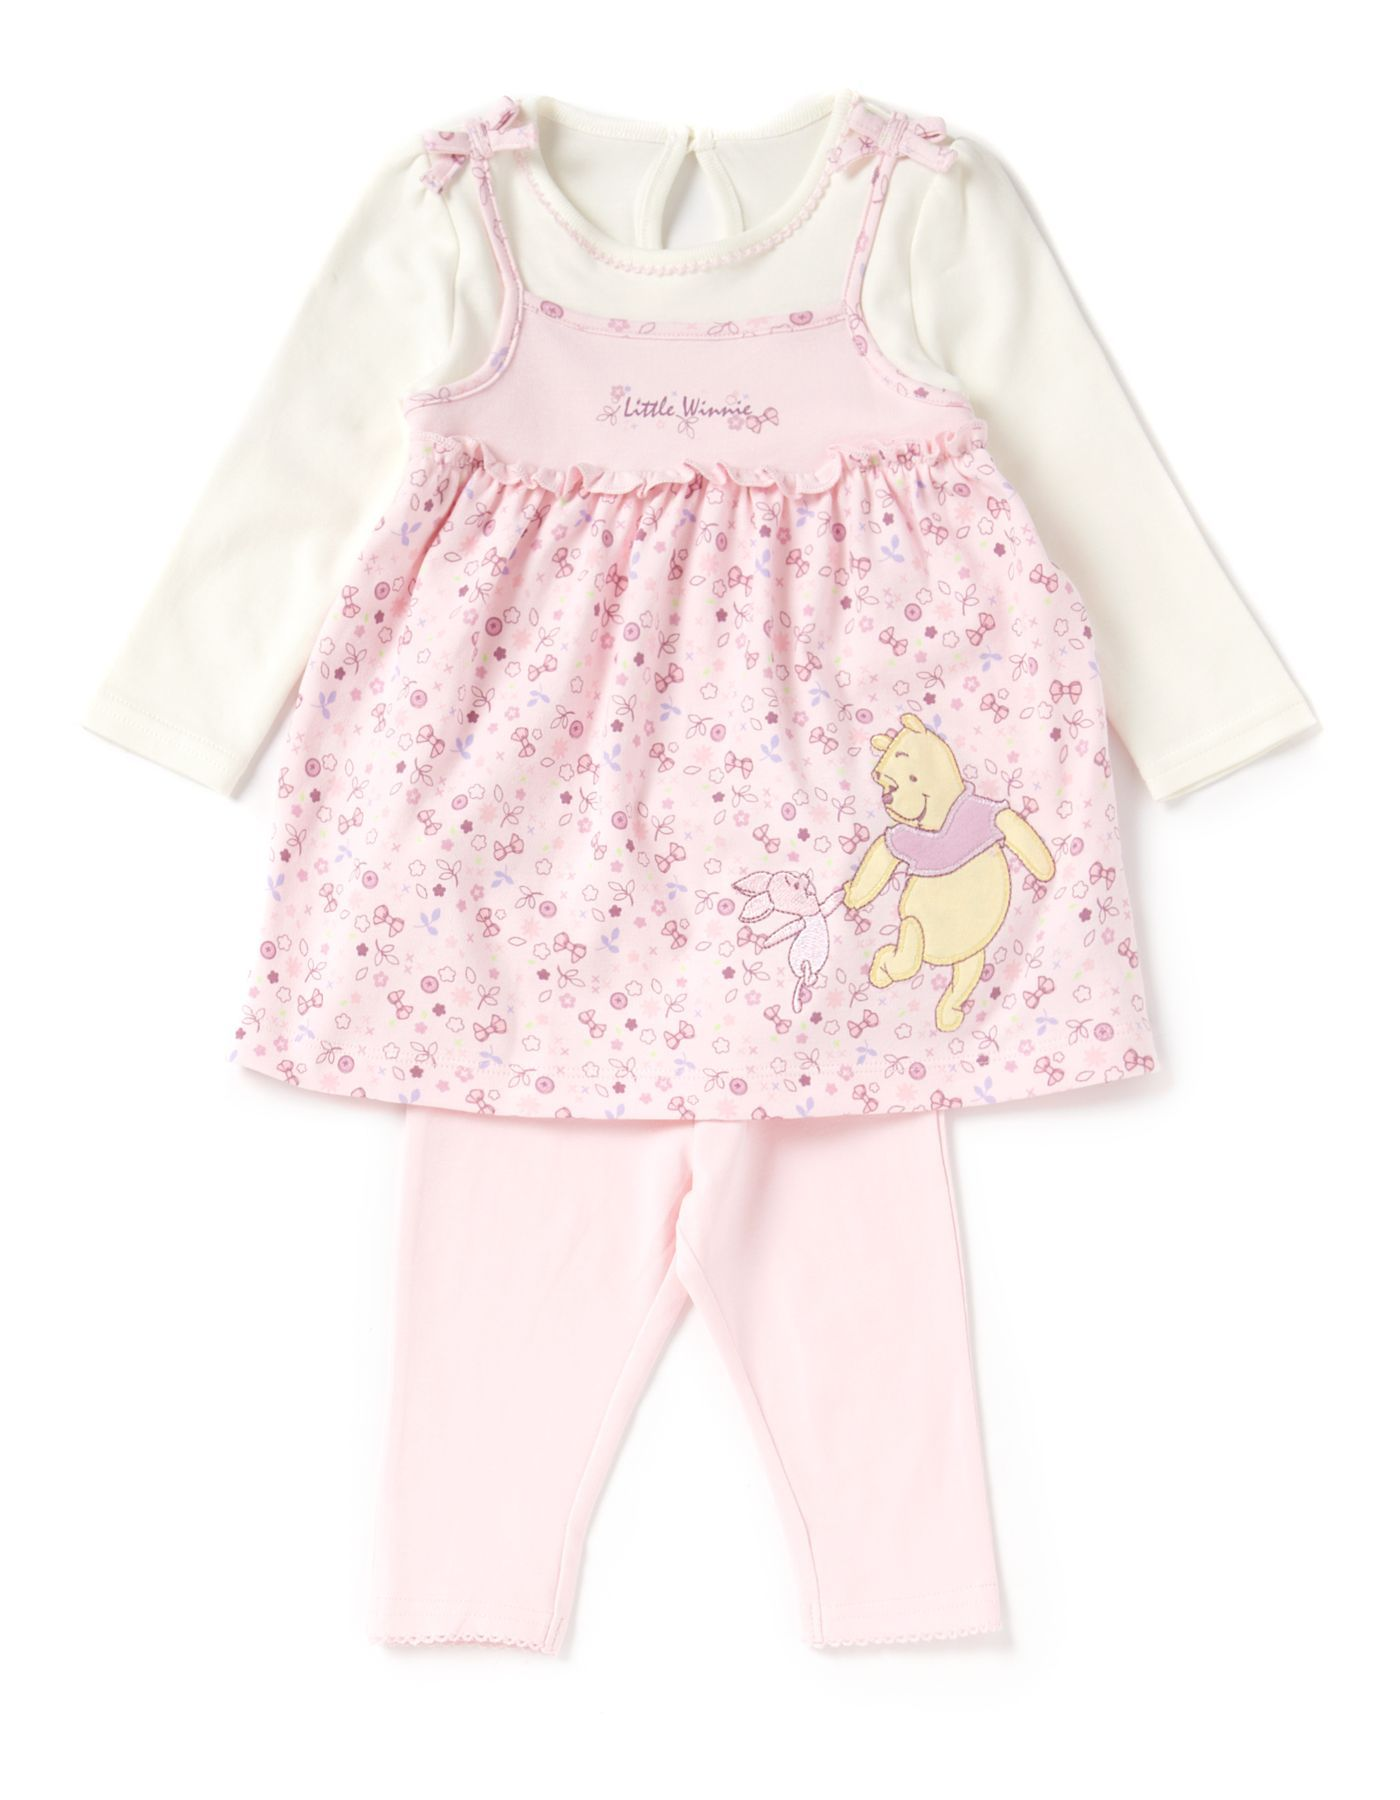 Winnie the Pooh Baby Dress and Leggings Baby